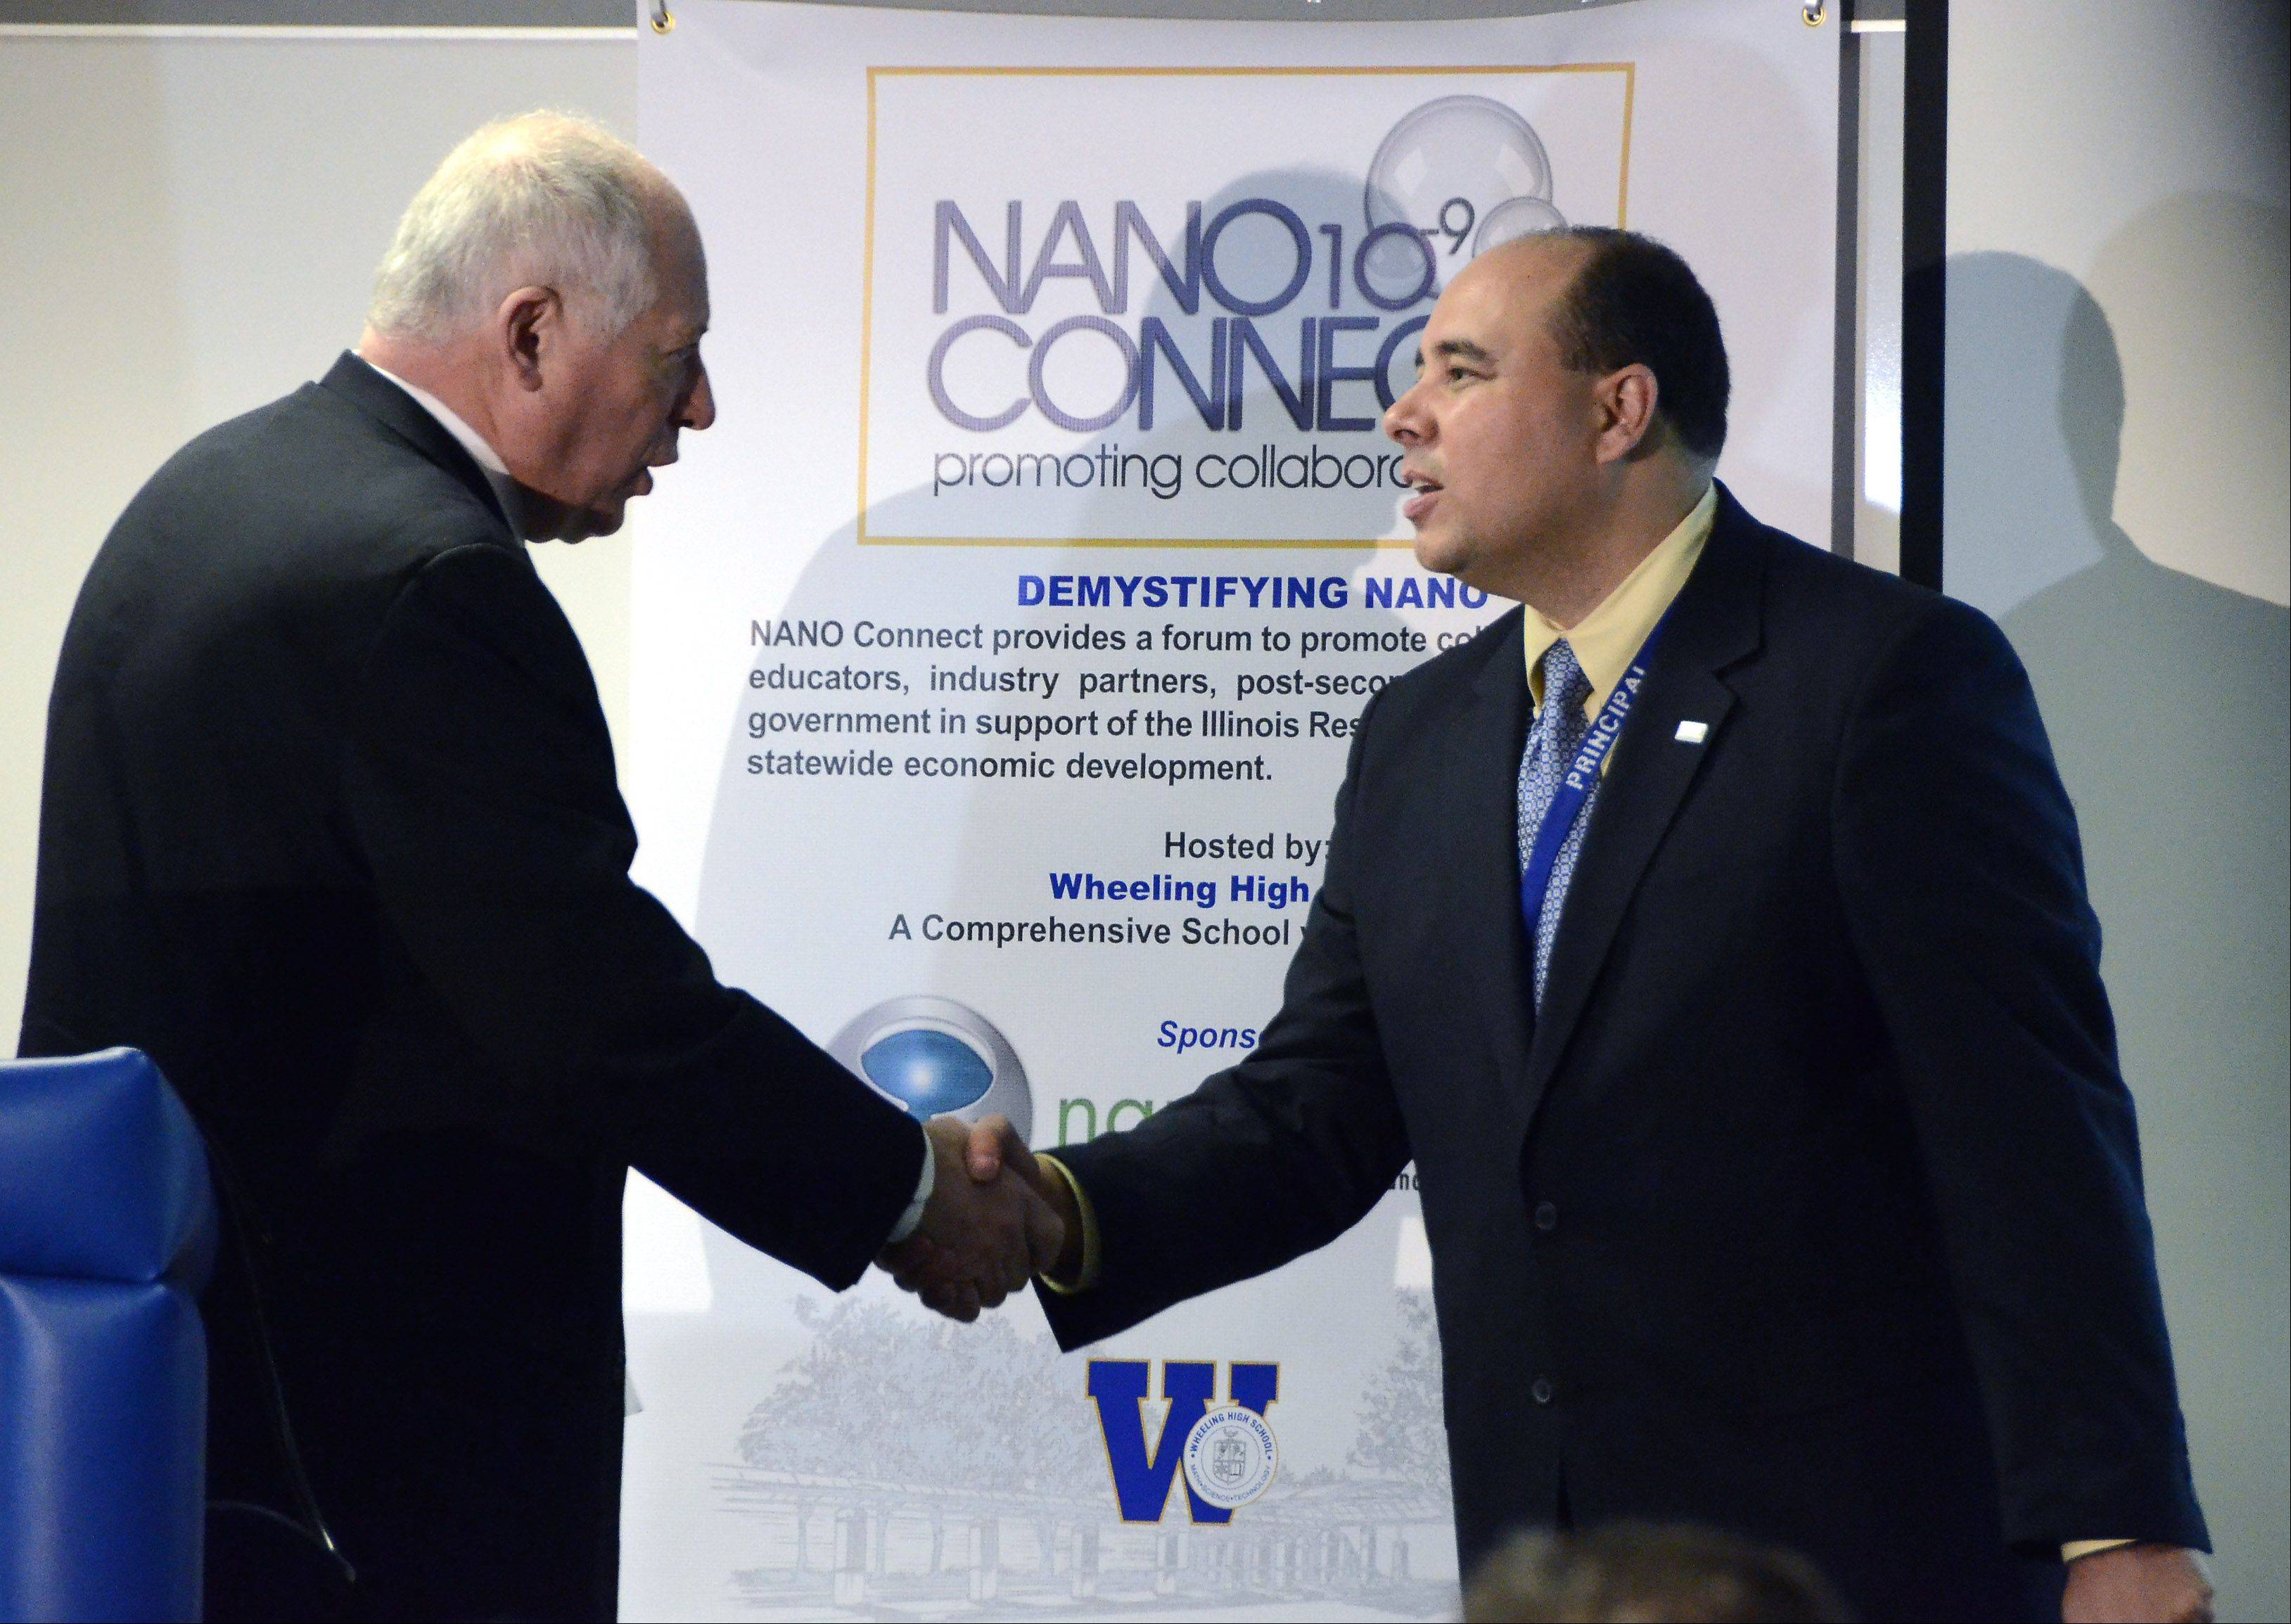 Gov. Pat Quinn thanks Wheeling High School Principal Lazaro Lopez at the NANO Connect forum held at the school.